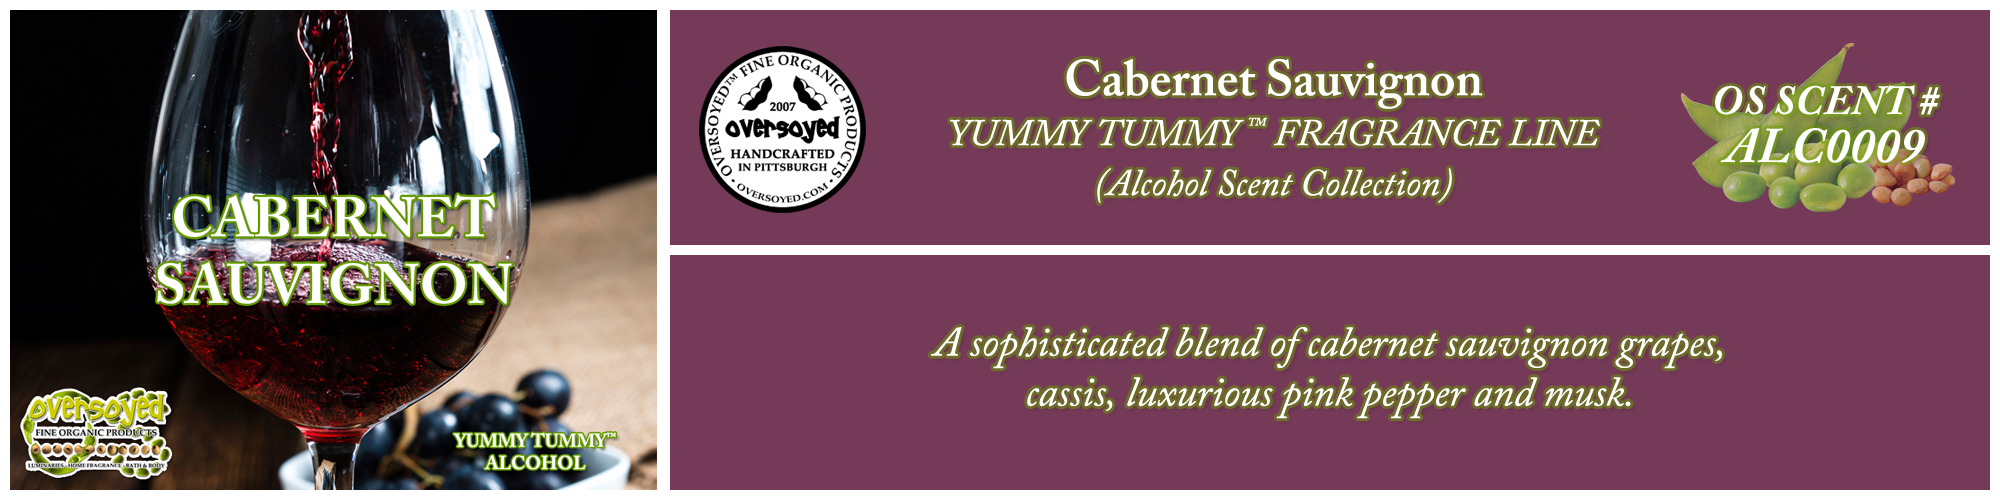 Cabernet Sauvignon Handcrafted Products Collection